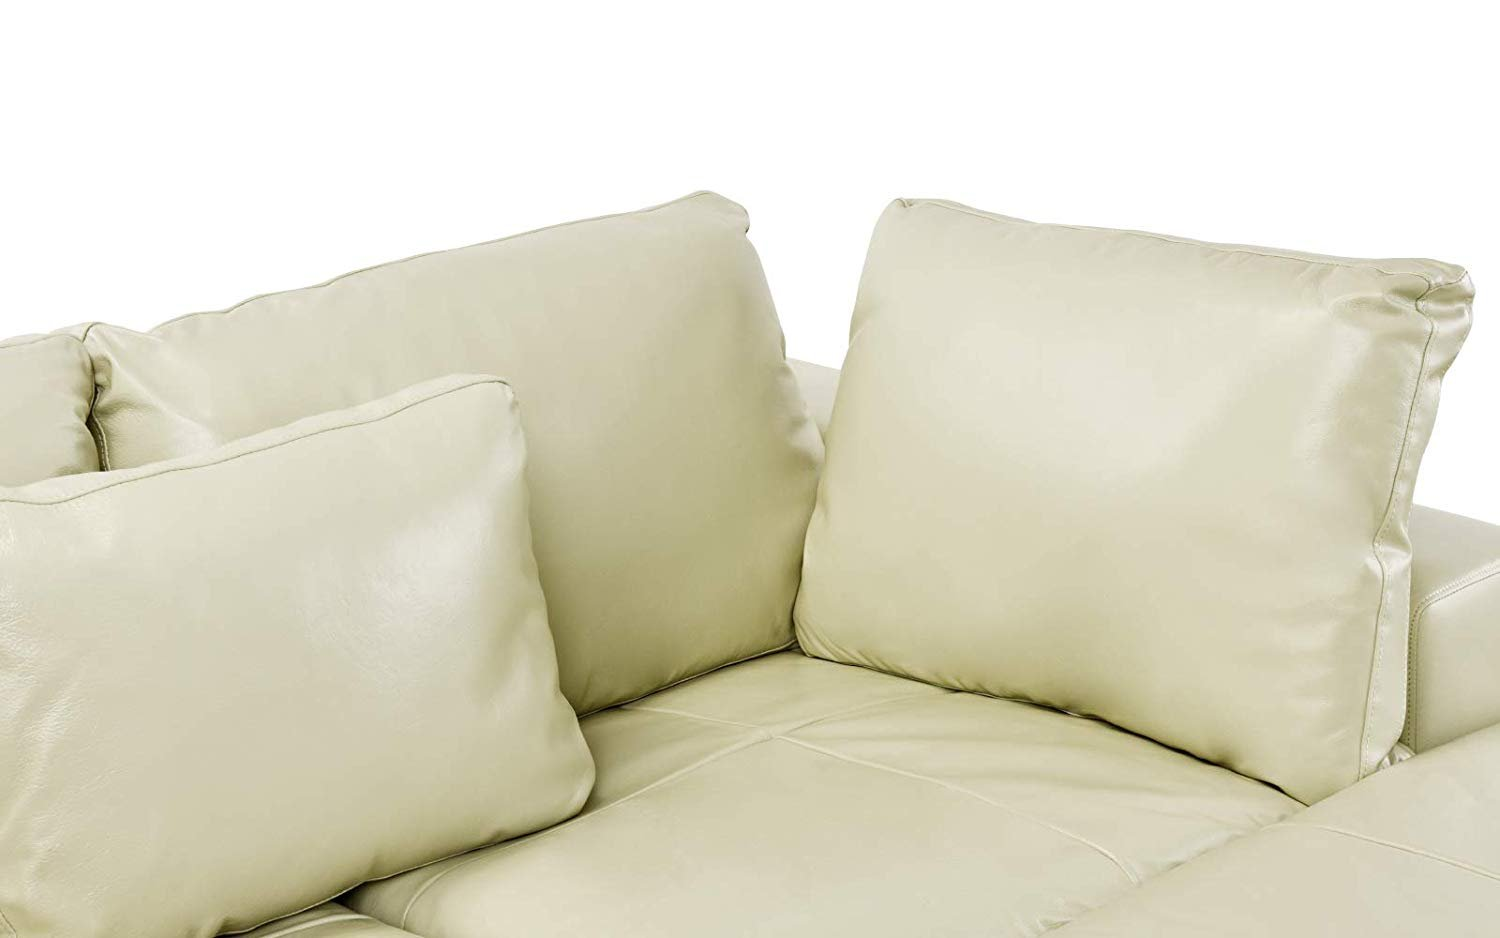 leather lounge sectional sofa l shape couch with wide chaise beige 662187615271 ebay. Black Bedroom Furniture Sets. Home Design Ideas